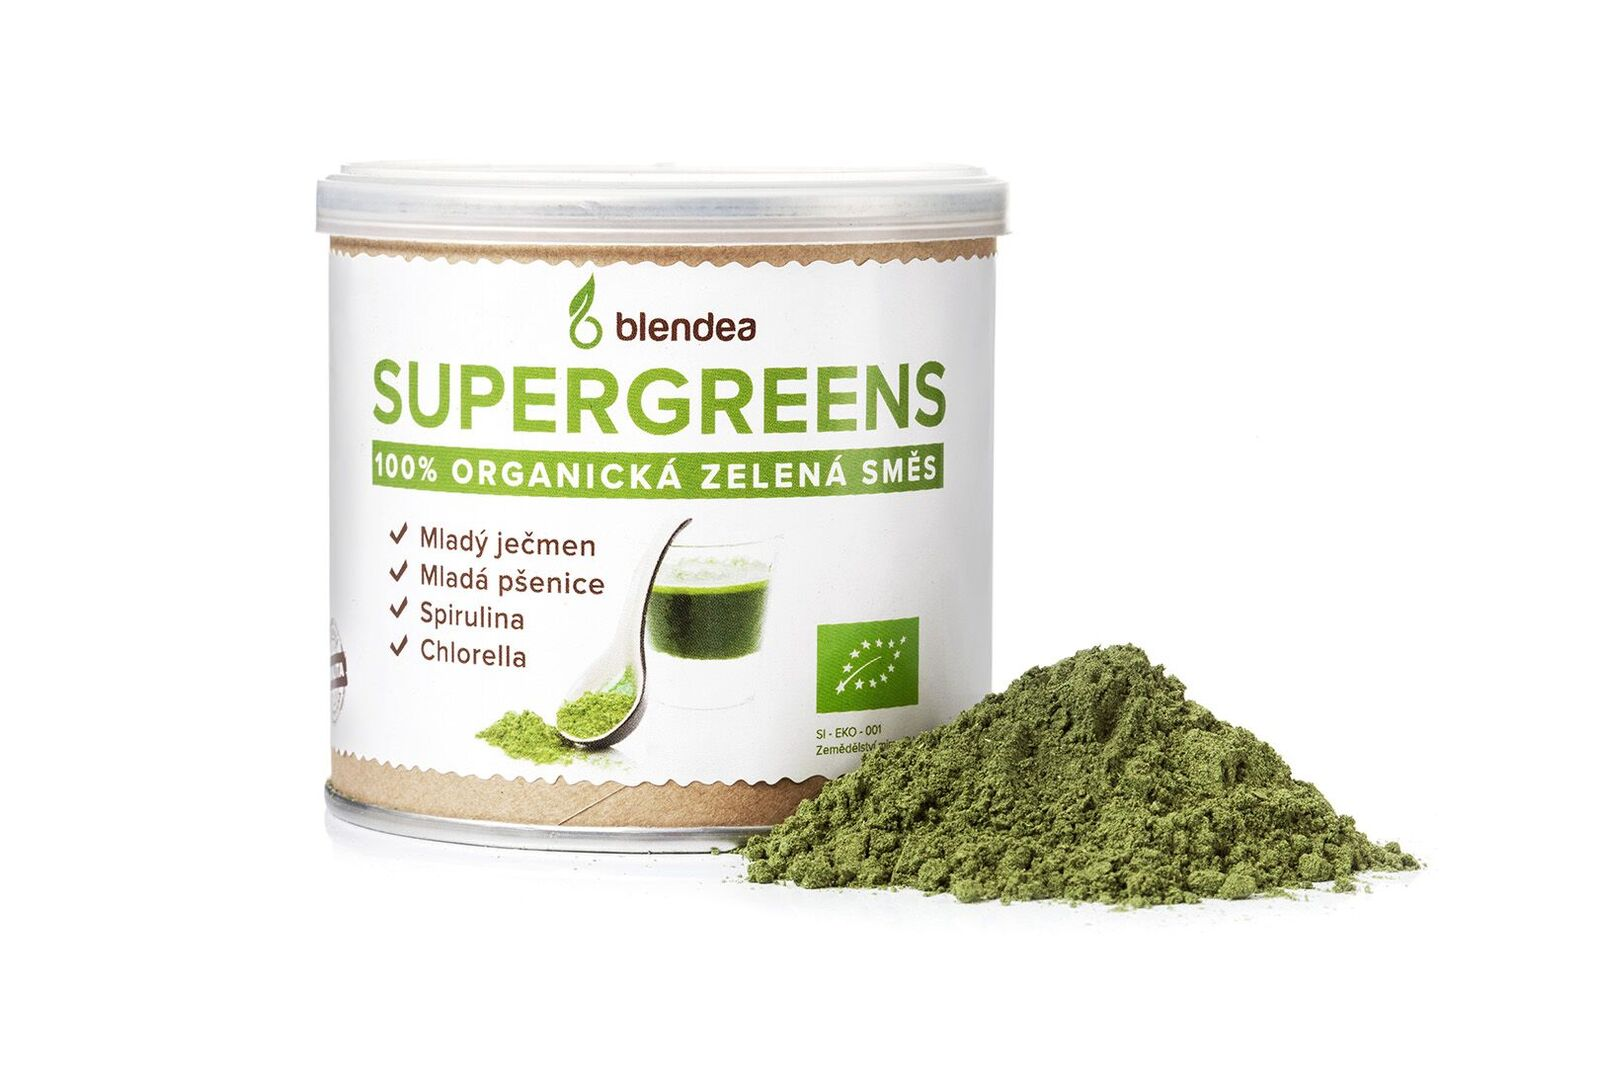 blendea supergreens